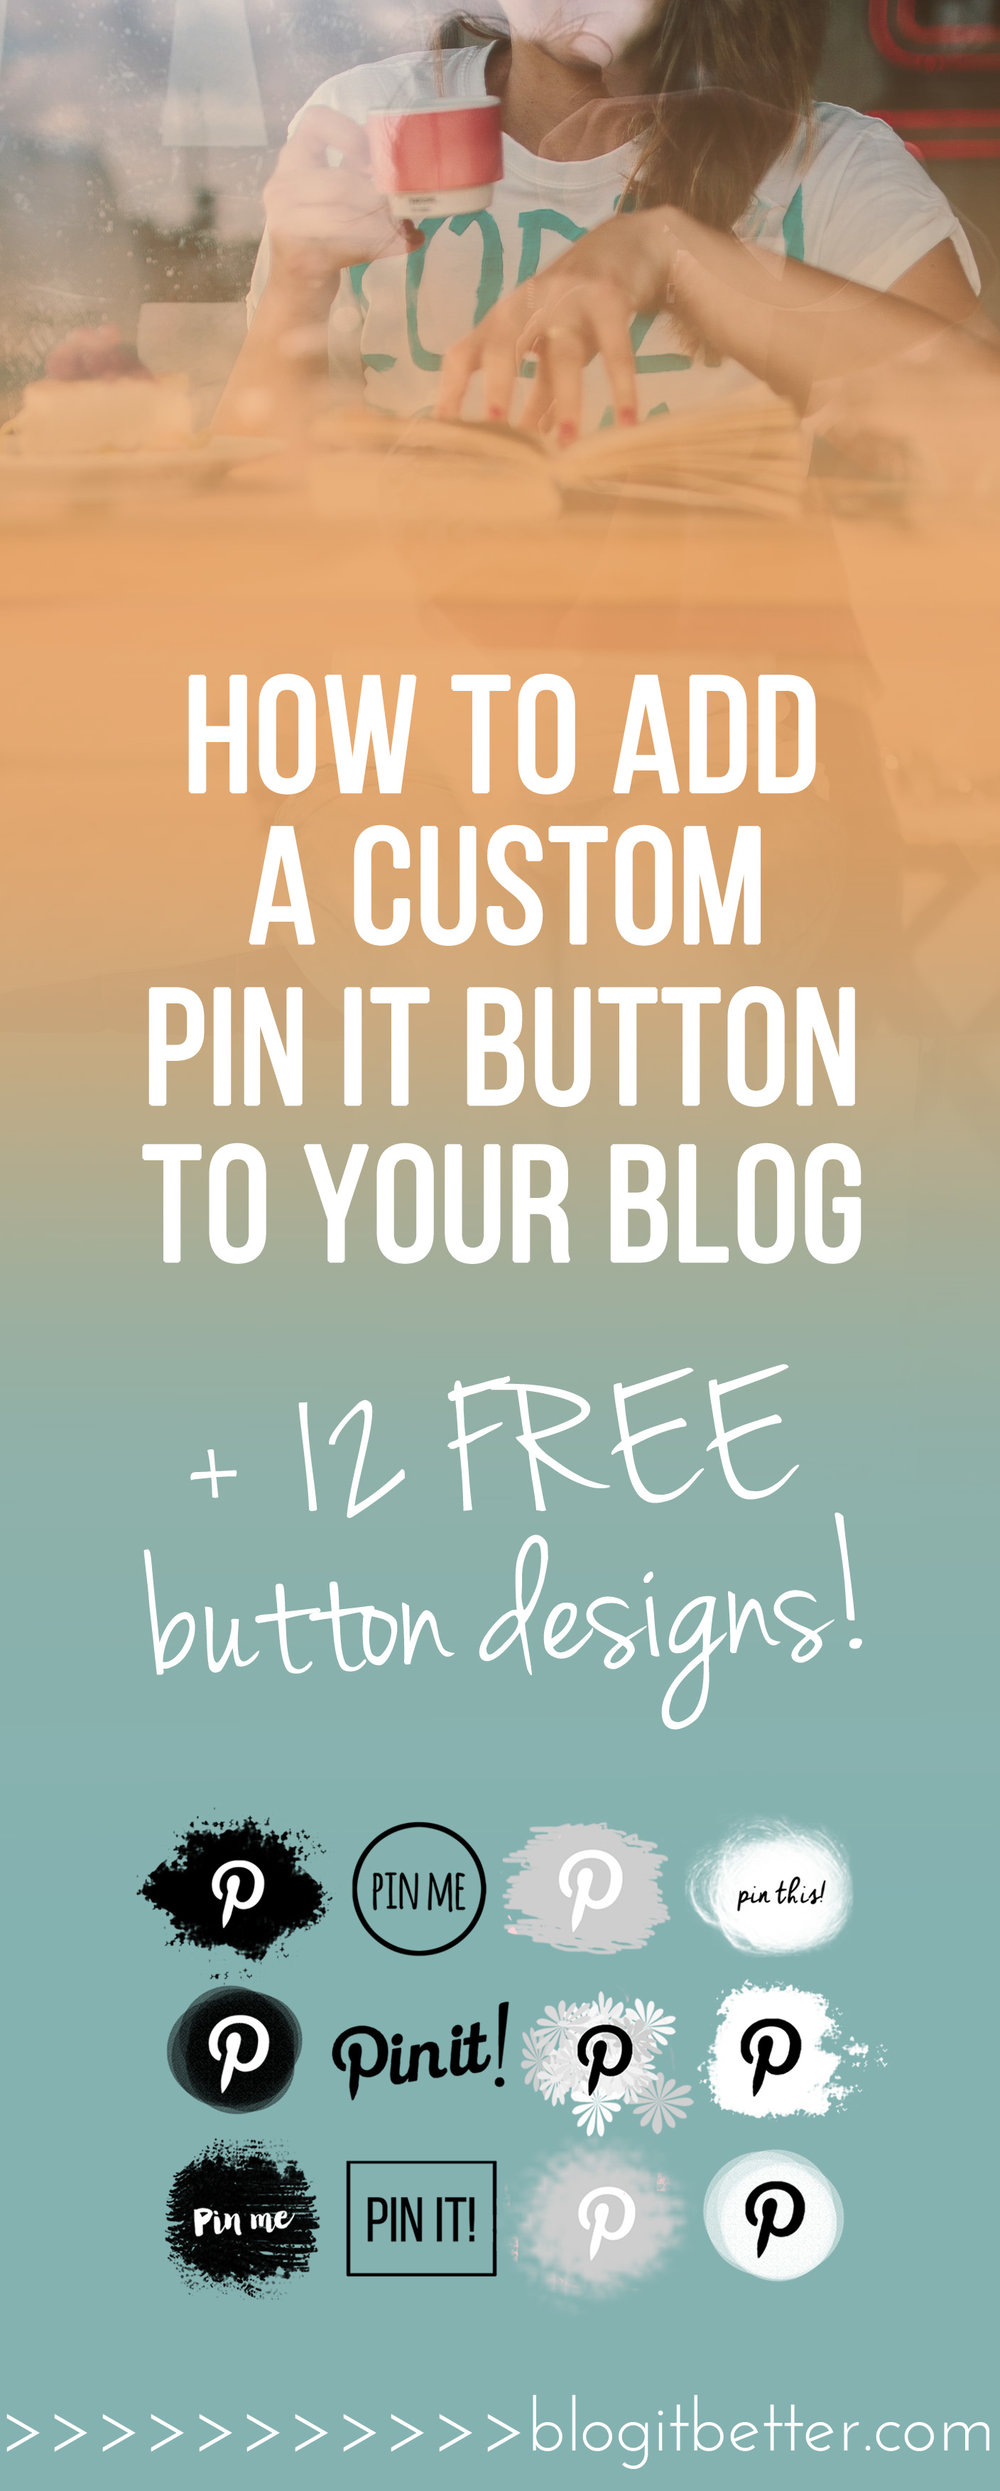 >> FREE Pin-It Buttons!<< Super handy step-by-step tutorial on how install a custom Pinterest pin-it button on your blog or website - Squarespace and Wordpress!  #pinterest #pinteresttips #pinterestforbusiness #pinterestforbloggers #socialmediatips #howtousepinterest #pinterestseo #pinteresttraffic #pinitbutton #wordpresstips #squarespacetips #blogitbetter #bloggingtips